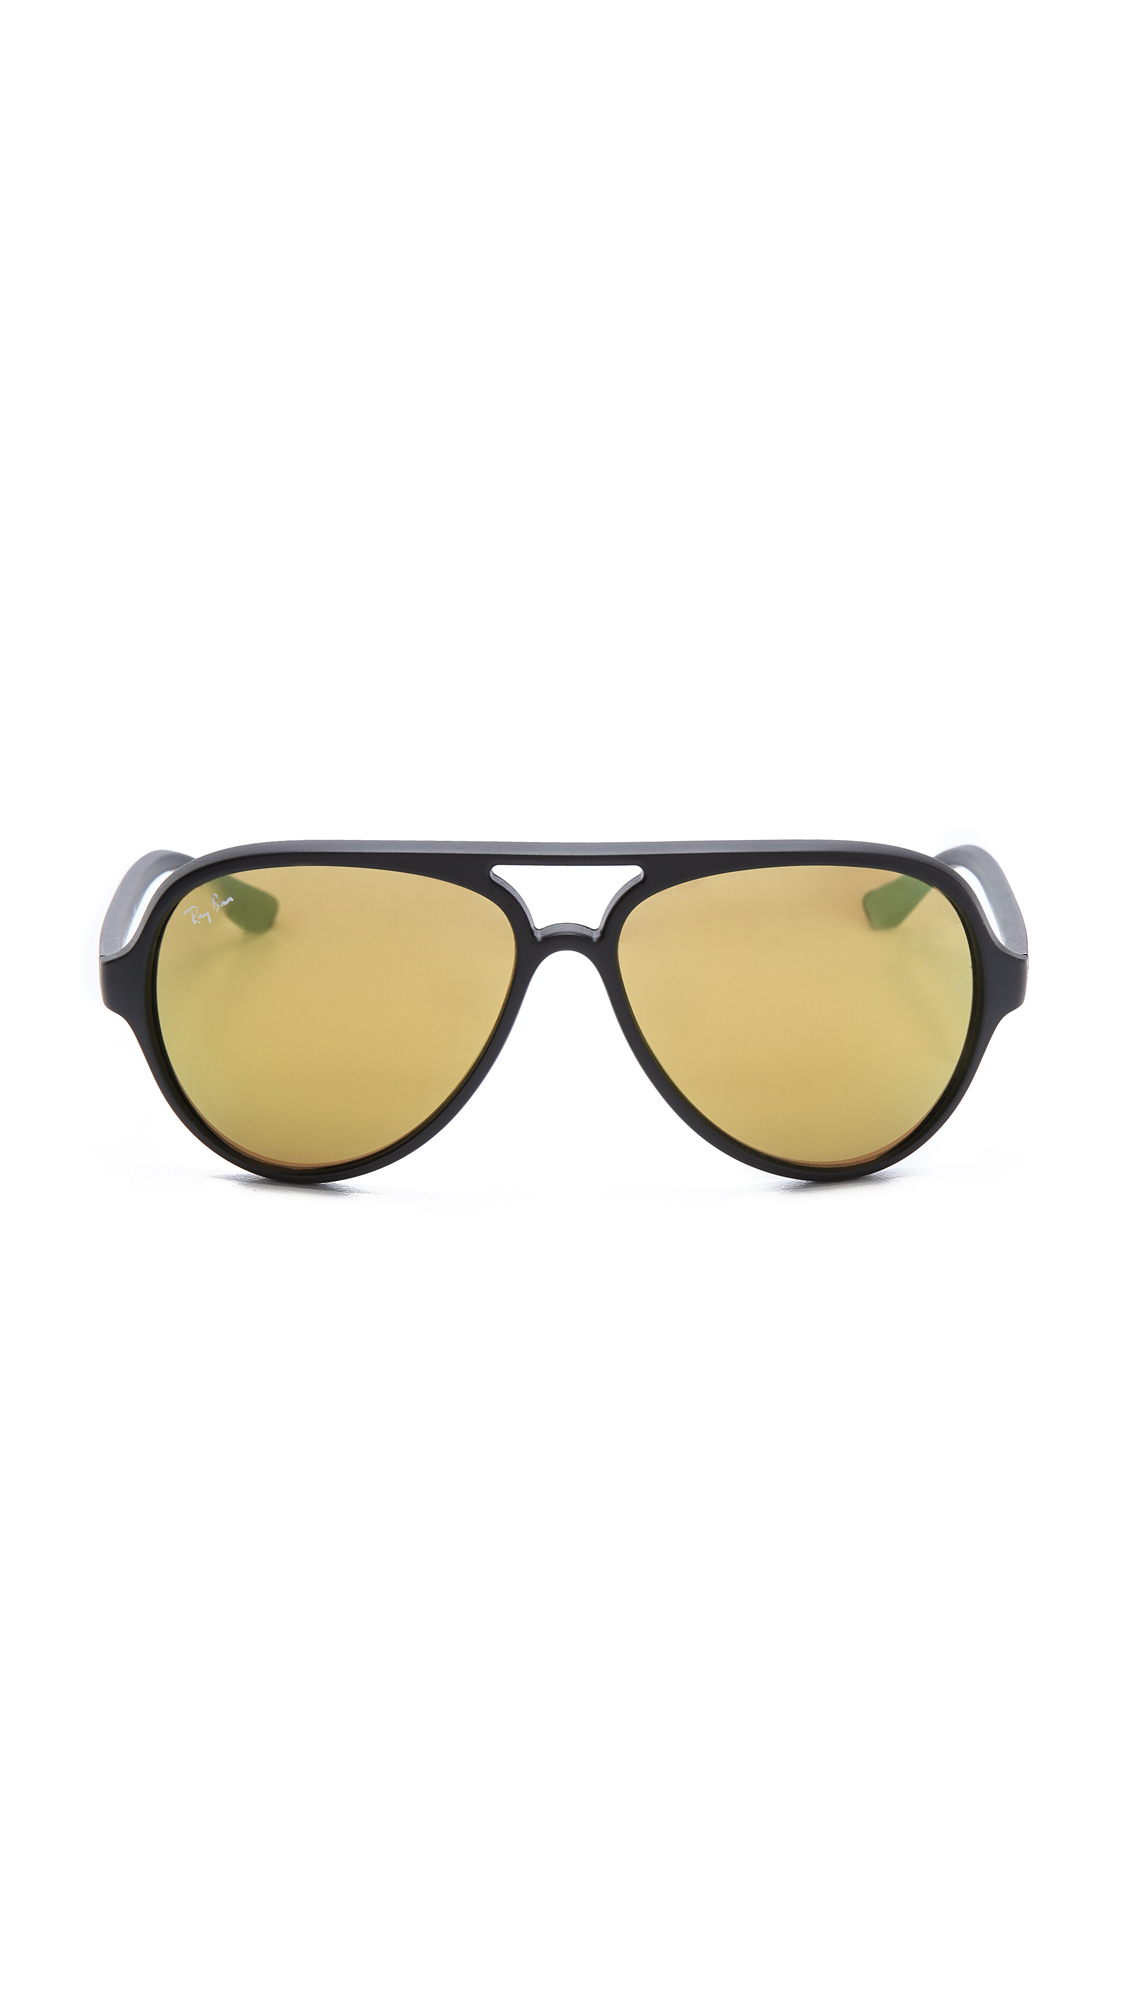 Ray-ban Matte Mirrored Cats 5000 Sunglasses - Black/Green Mirror